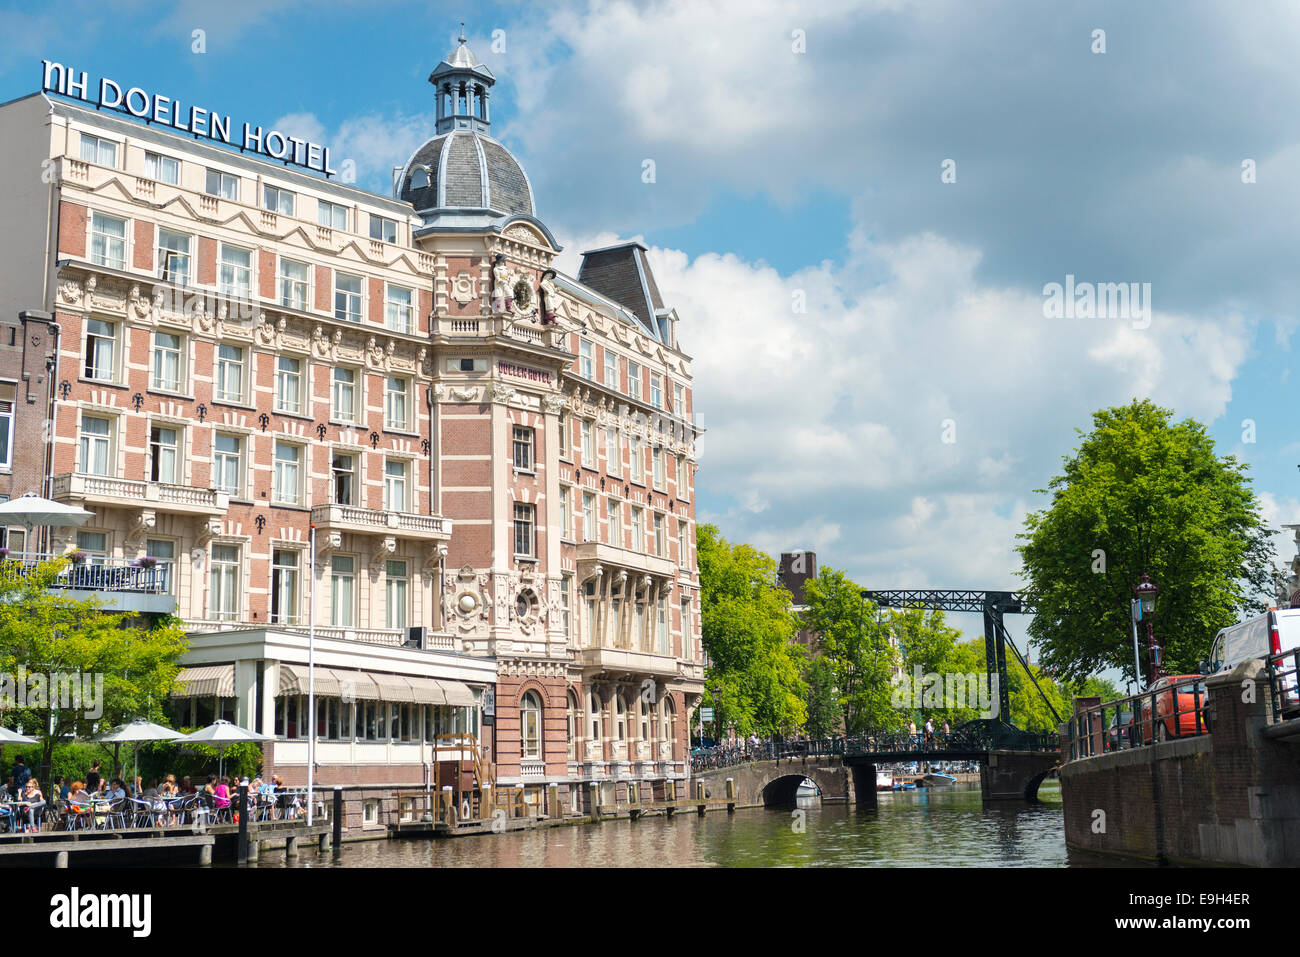 Doelen Hotel and gracht with guests on a terrace, Amsterdam, Netherlands - Stock Image